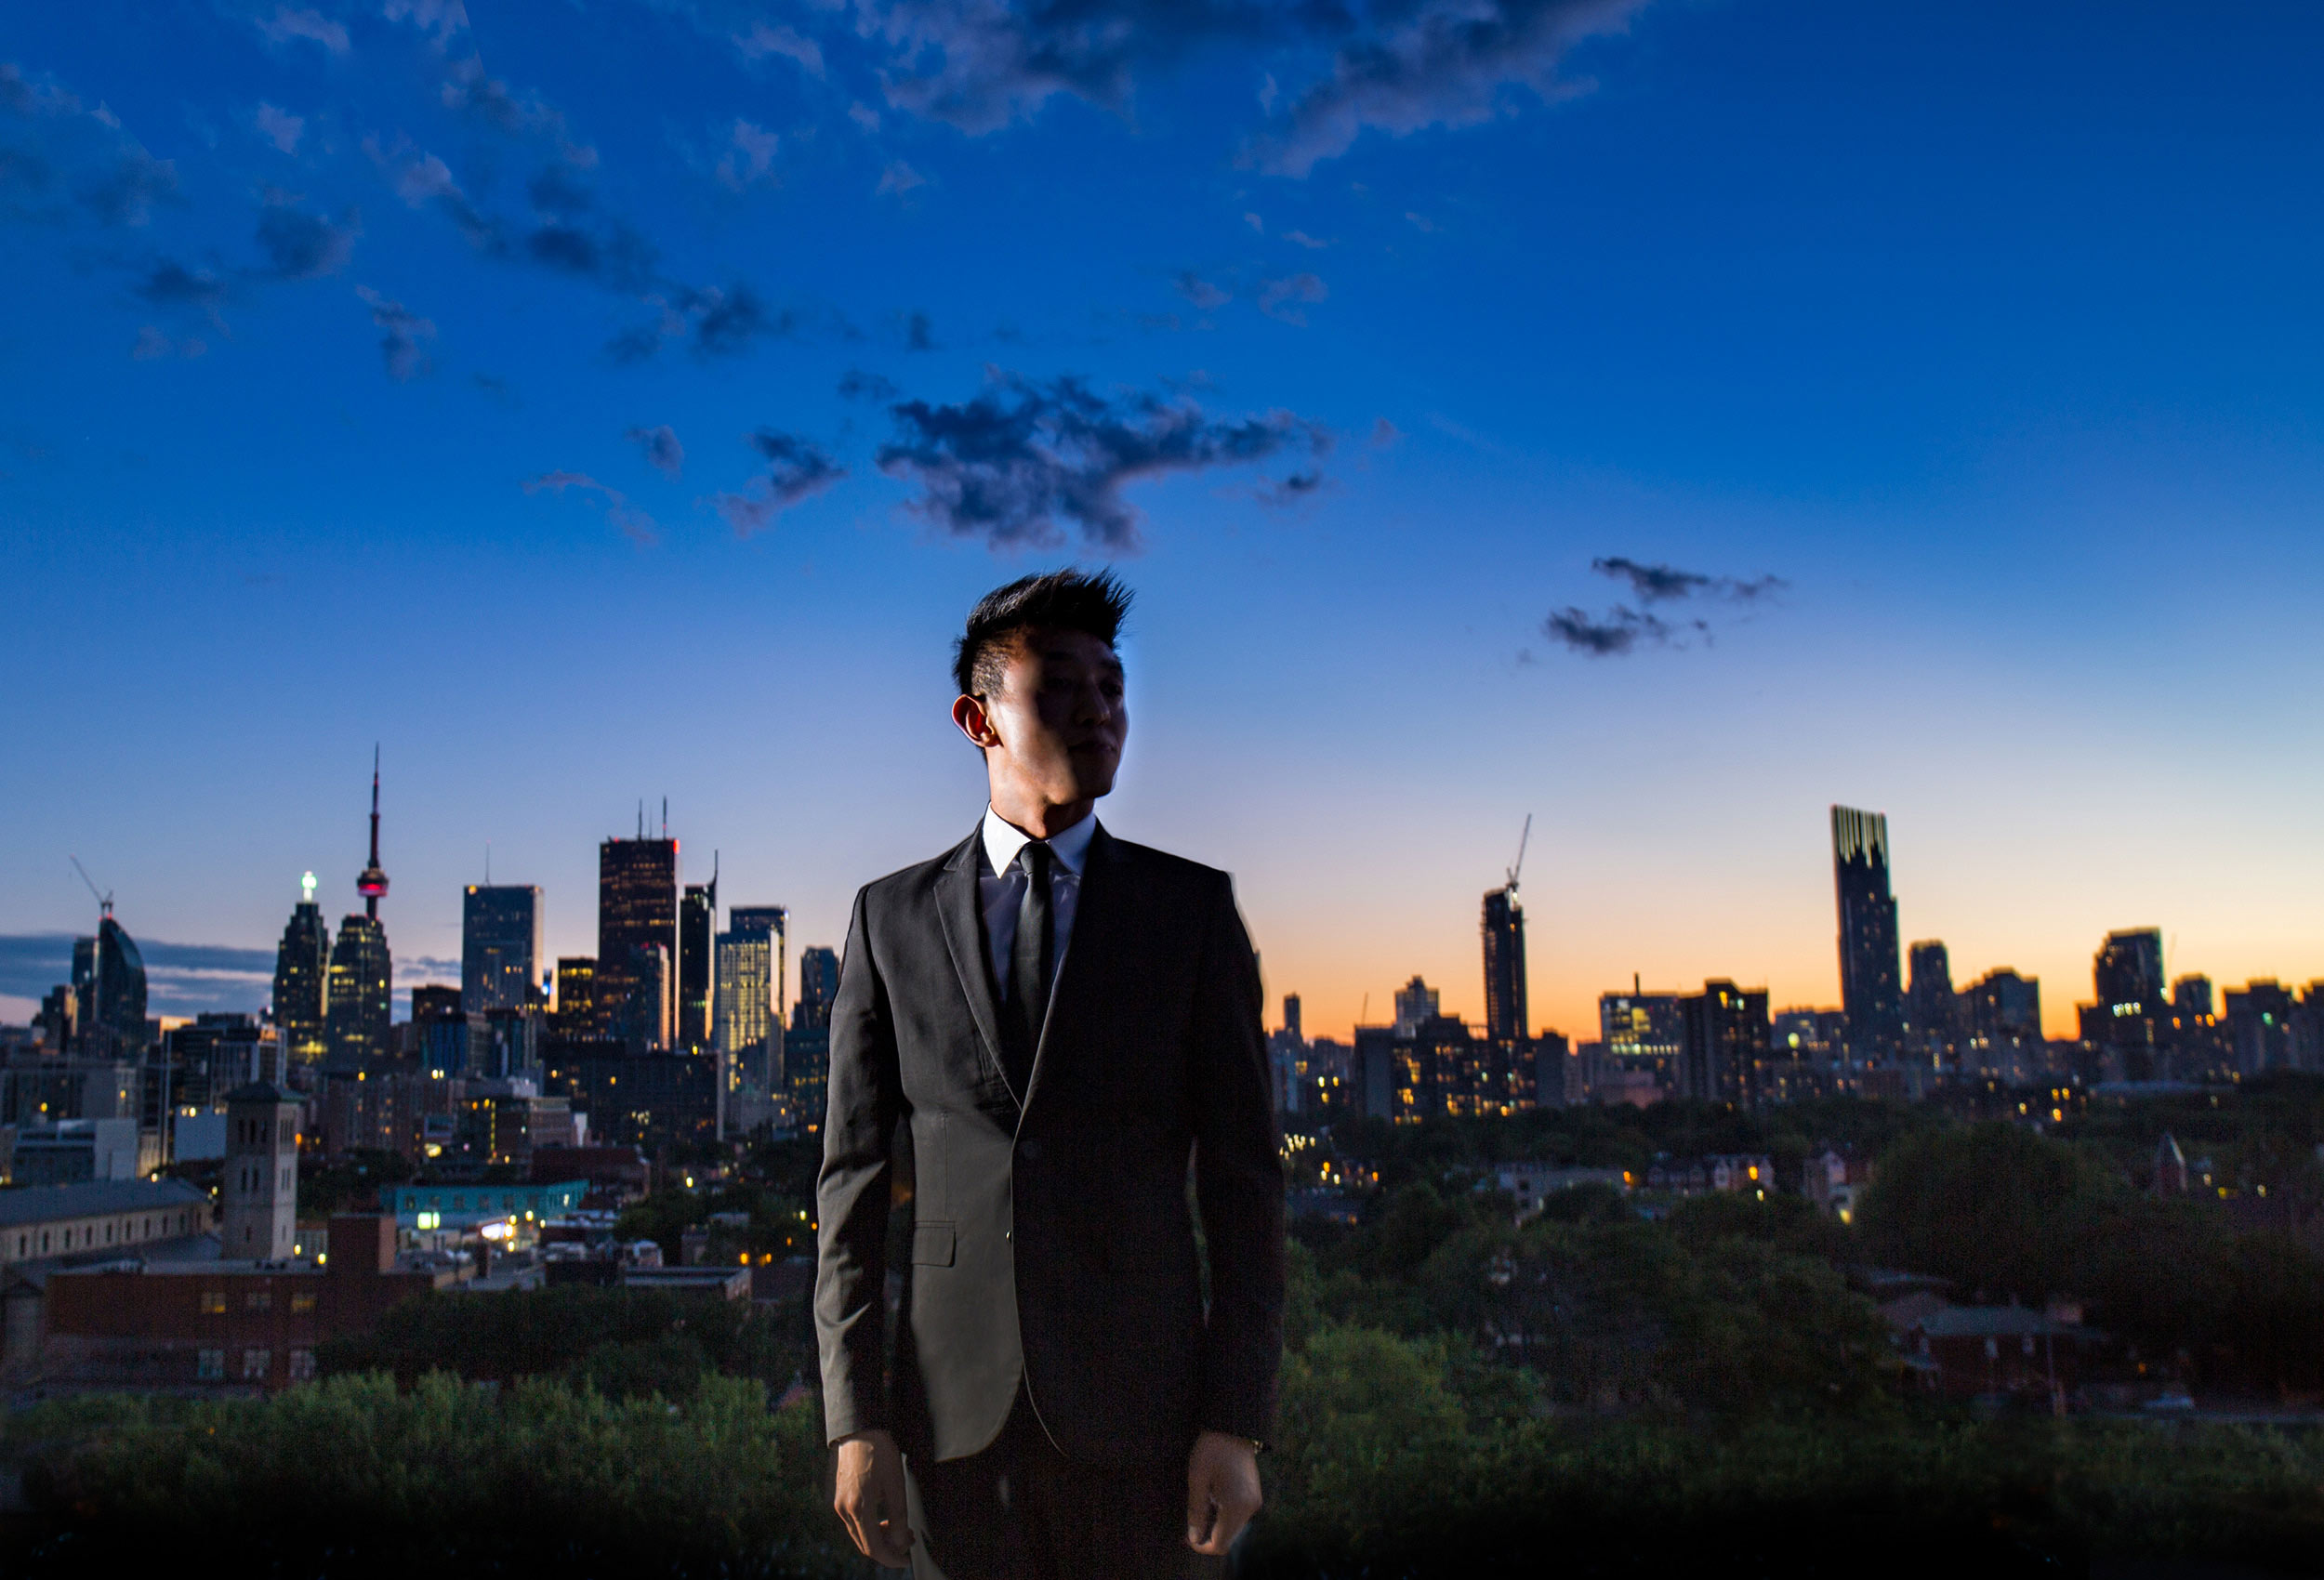 handsome-man-with-toronto-skyline-at-dusk-by-photographer-John-Hryniuk